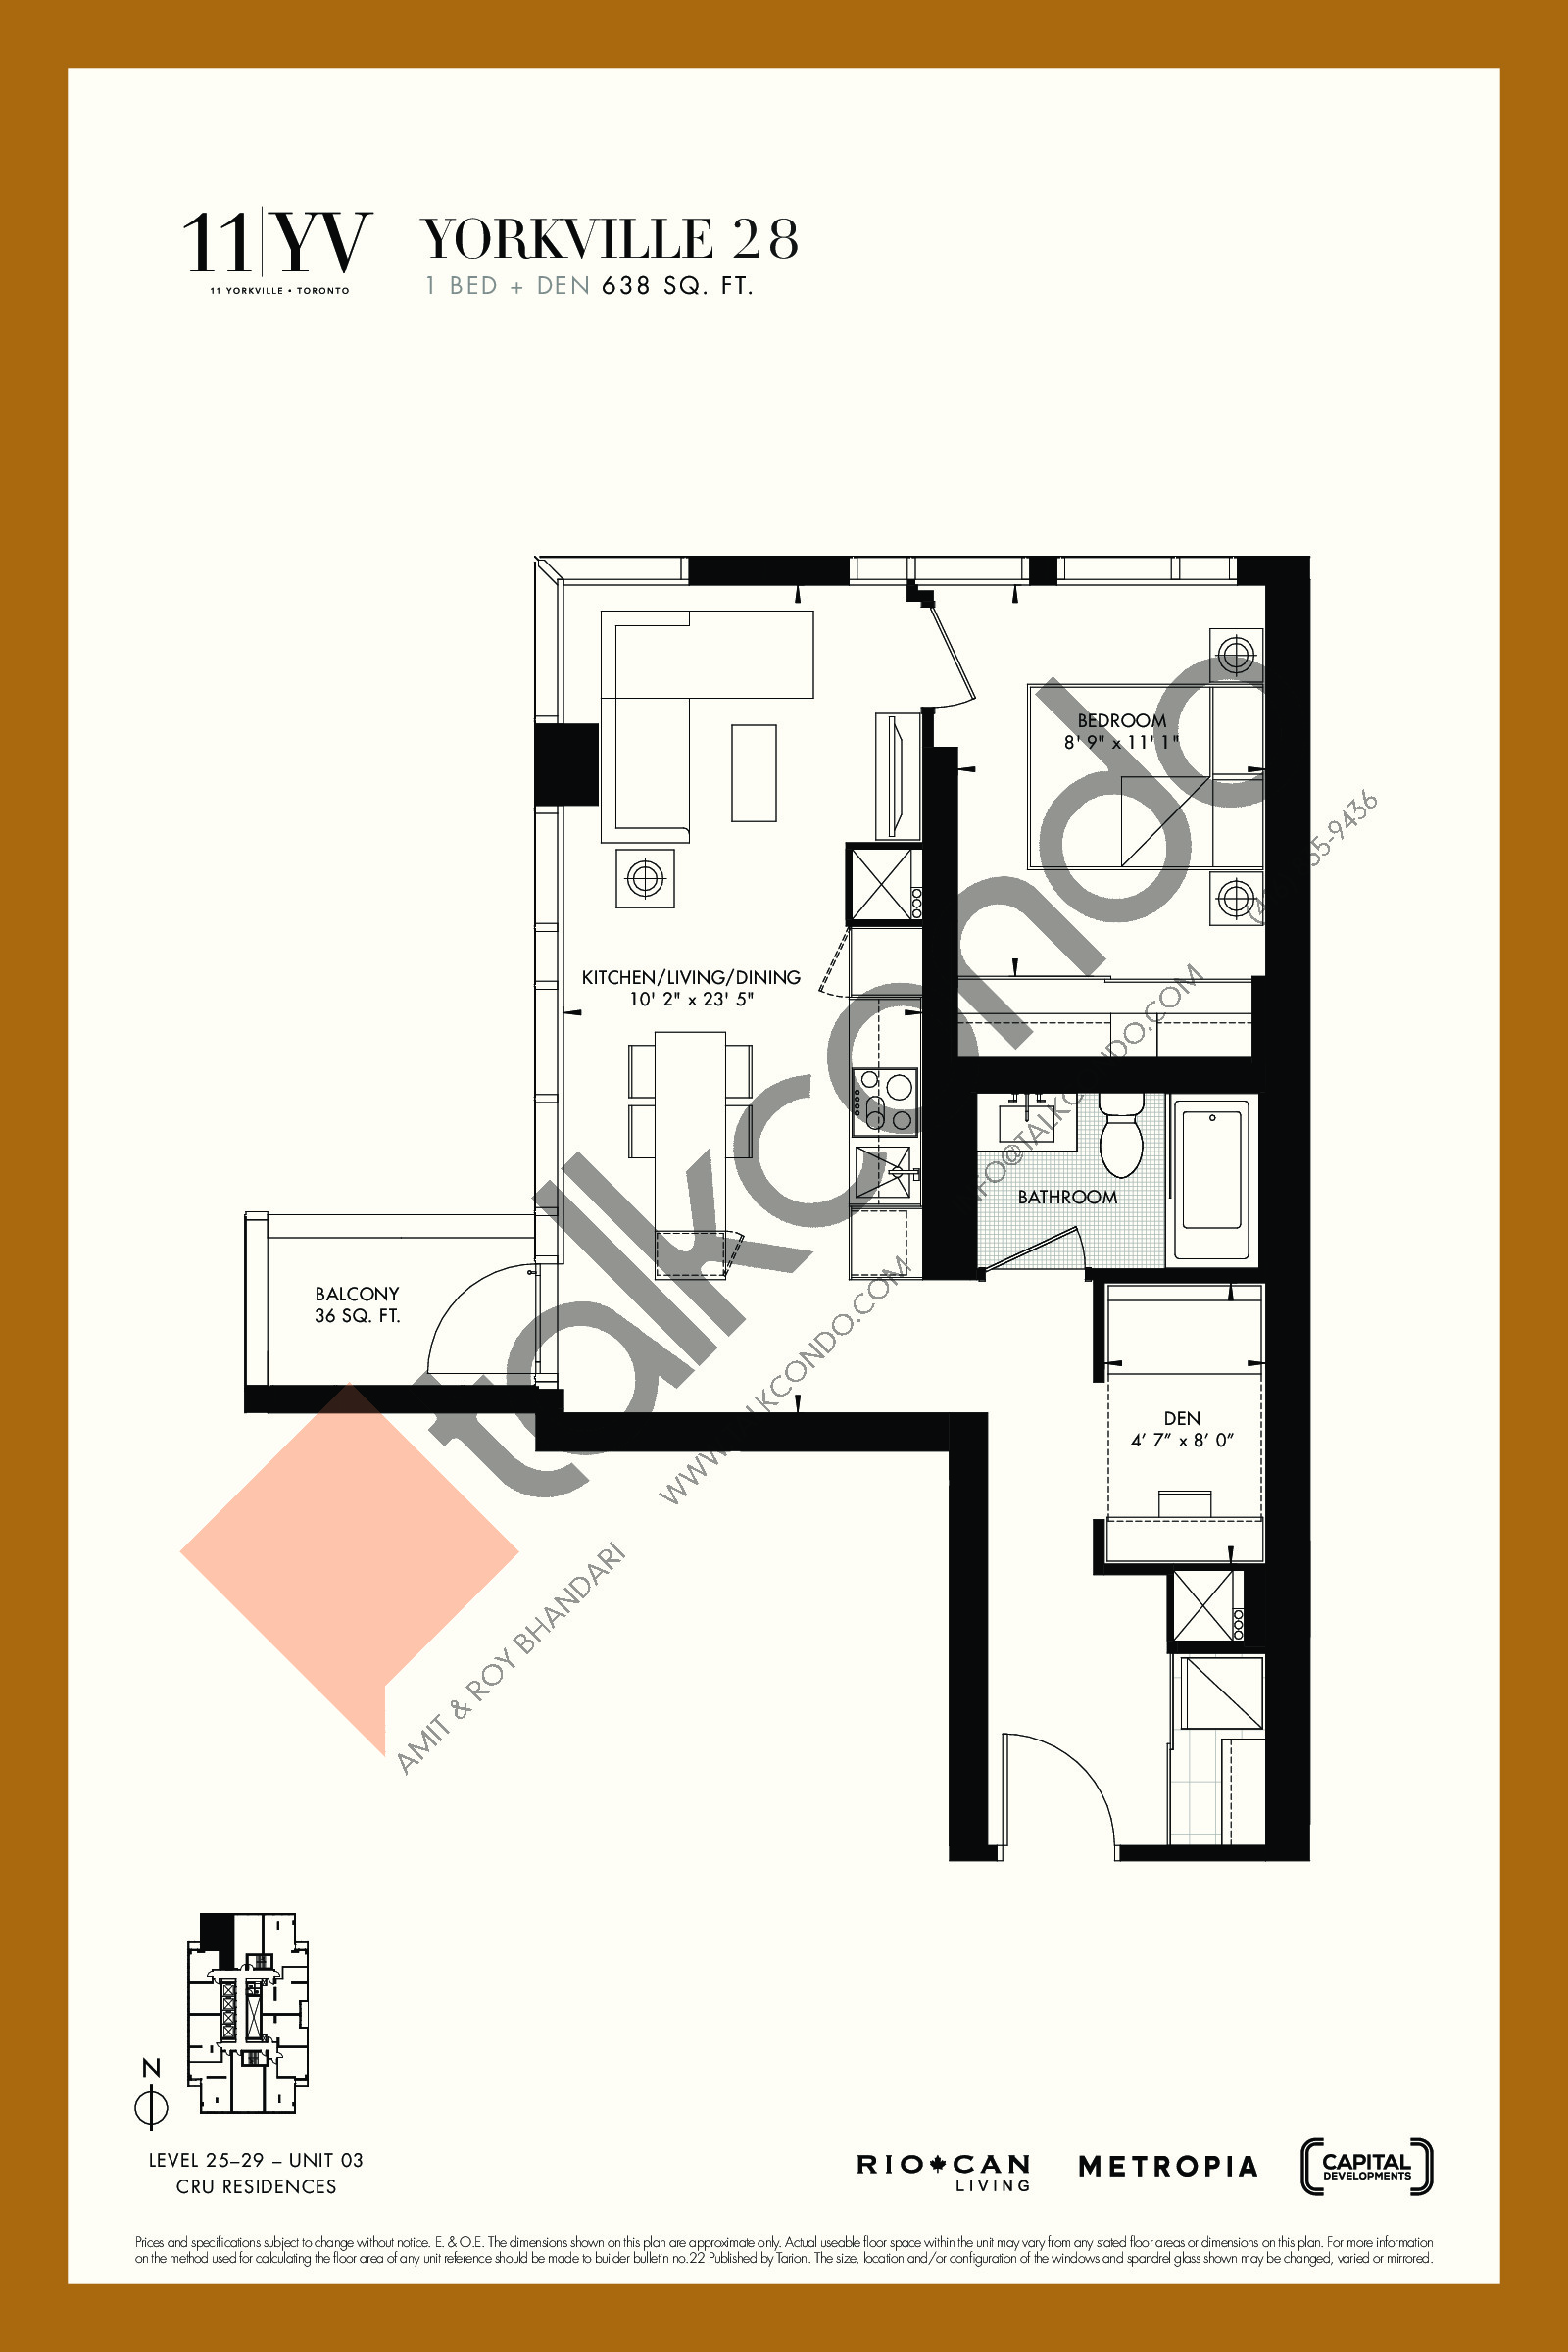 Yorkville 28 Floor Plan at 11YV Condos - 638 sq.ft